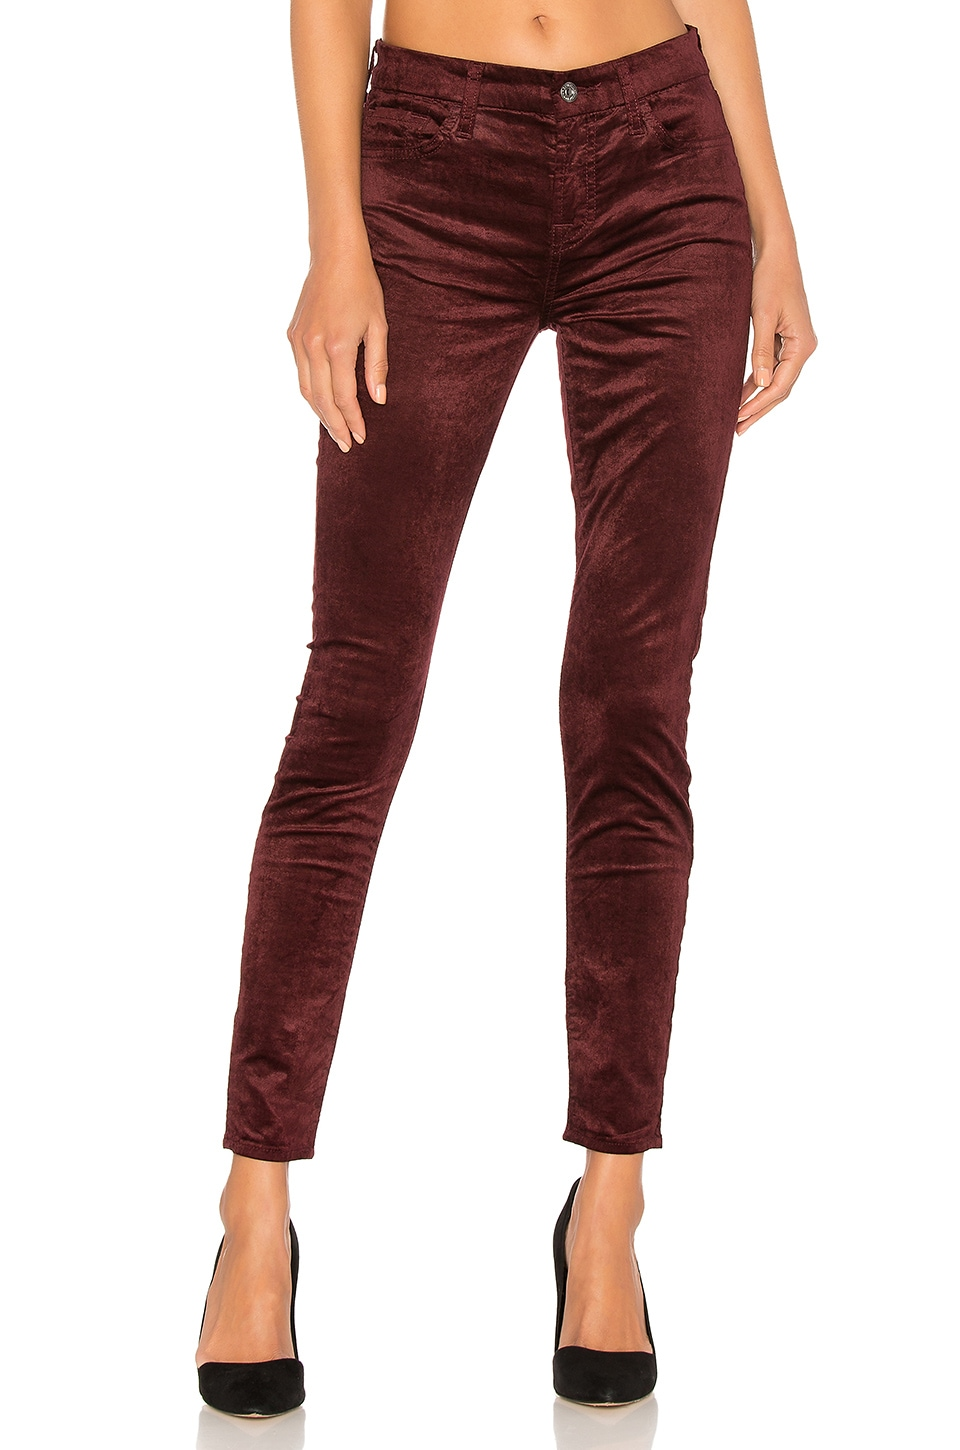 7 For All Mankind Burgundy Ankle Skinny